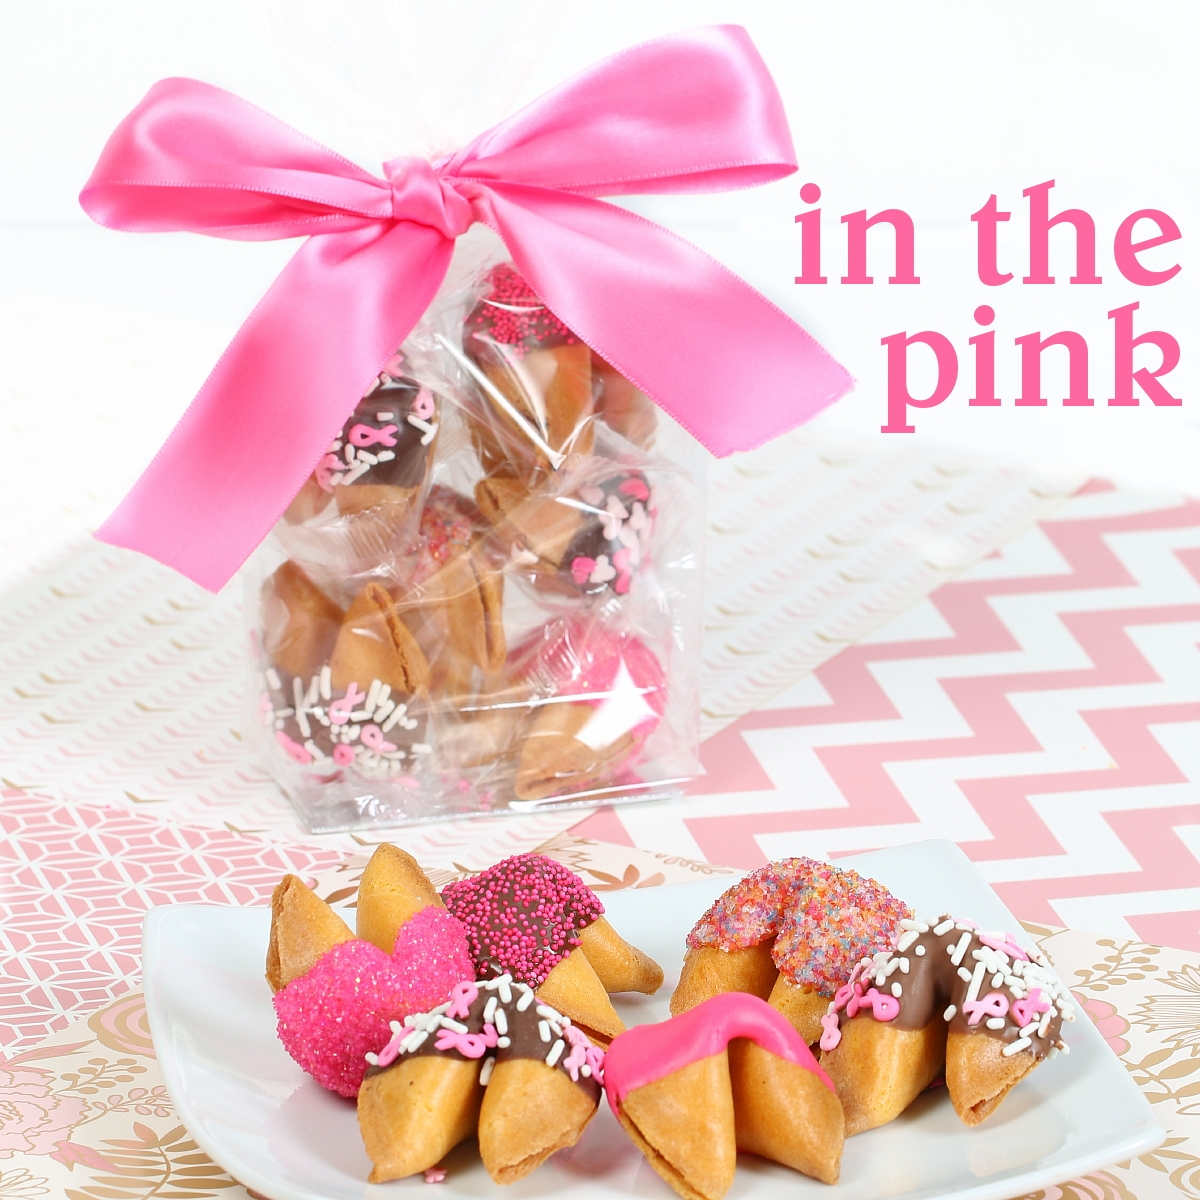 Pink Ribbon fortune cookies | Chocolate Covered Fortune Cookies ...